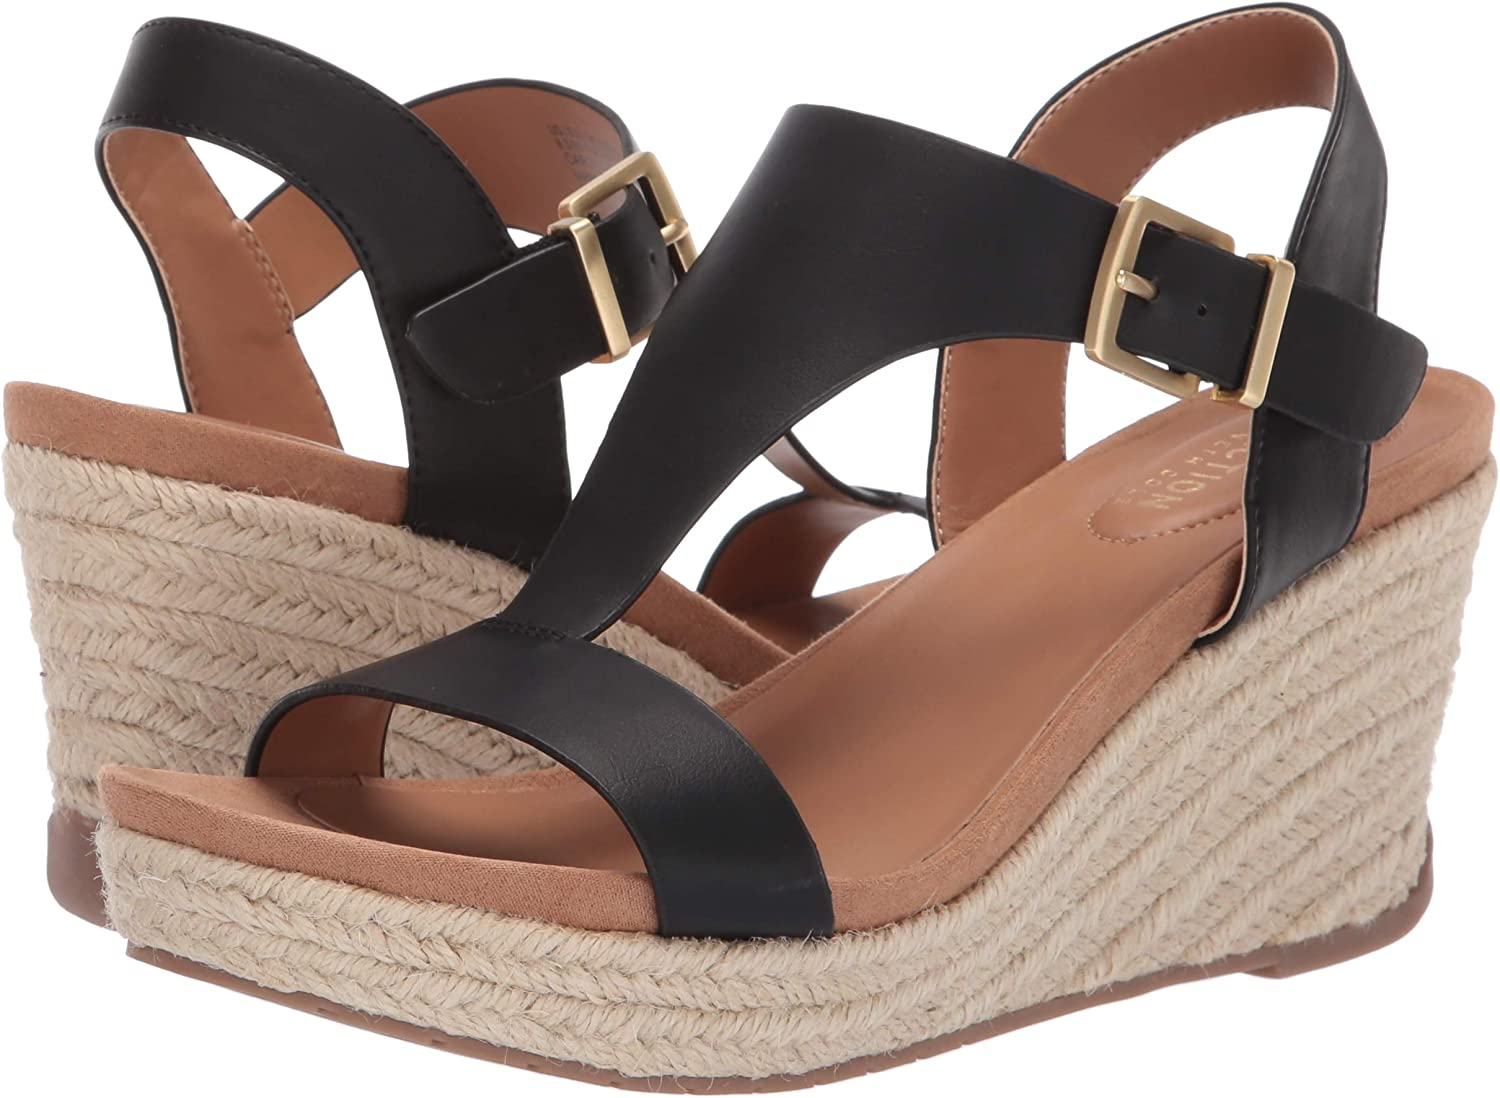 Kenneth Cole REACTION Womens Card Wedge T-Strap Espadrille Sandal